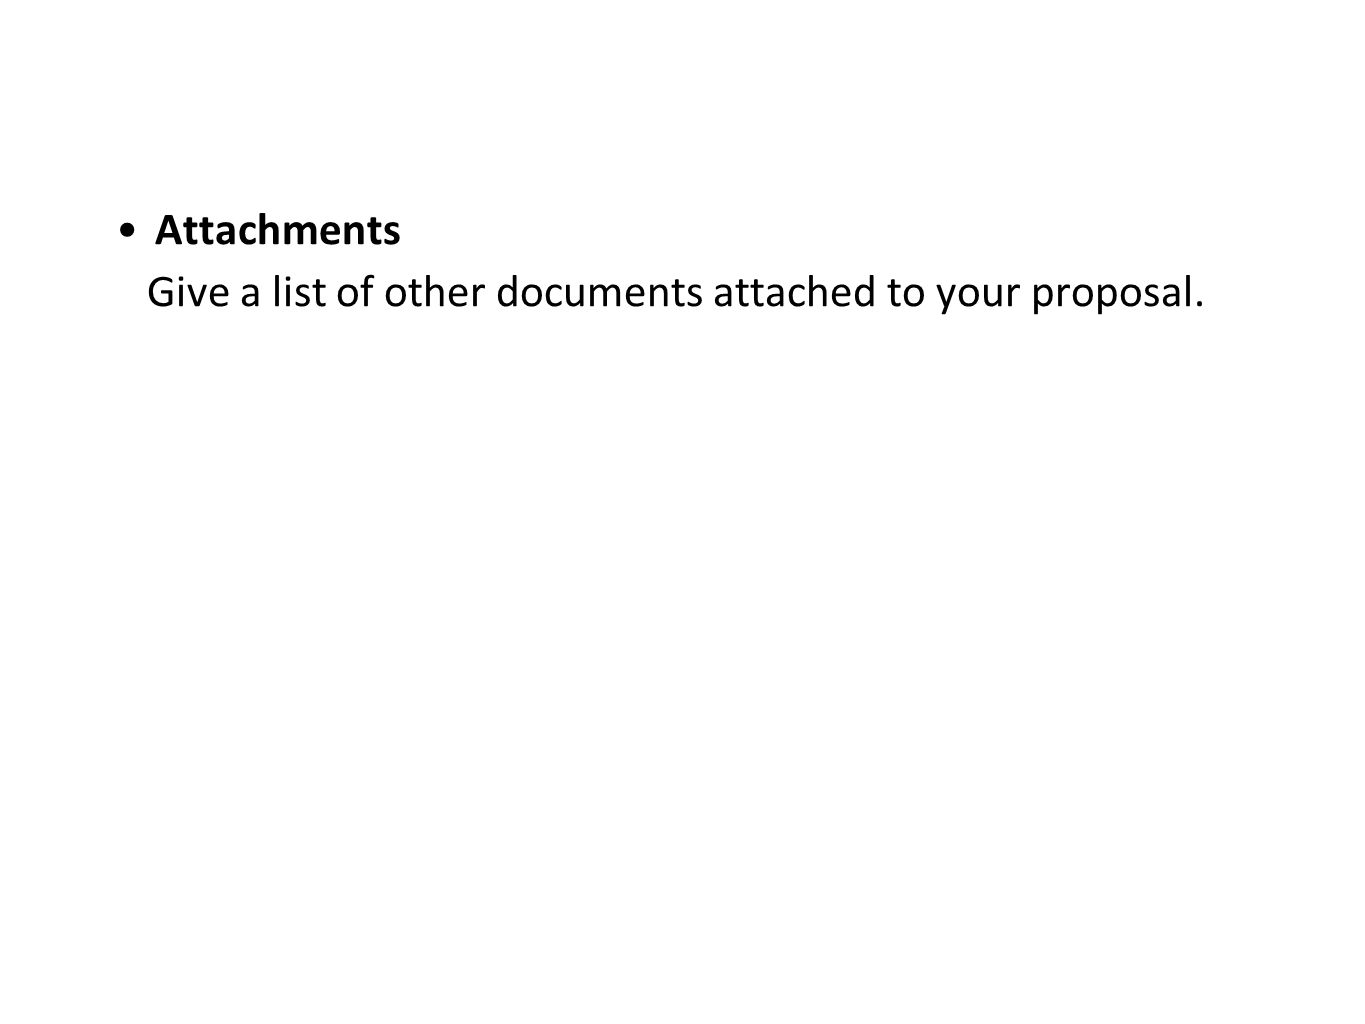 Attachments Give a list of other documents attached to your proposal.